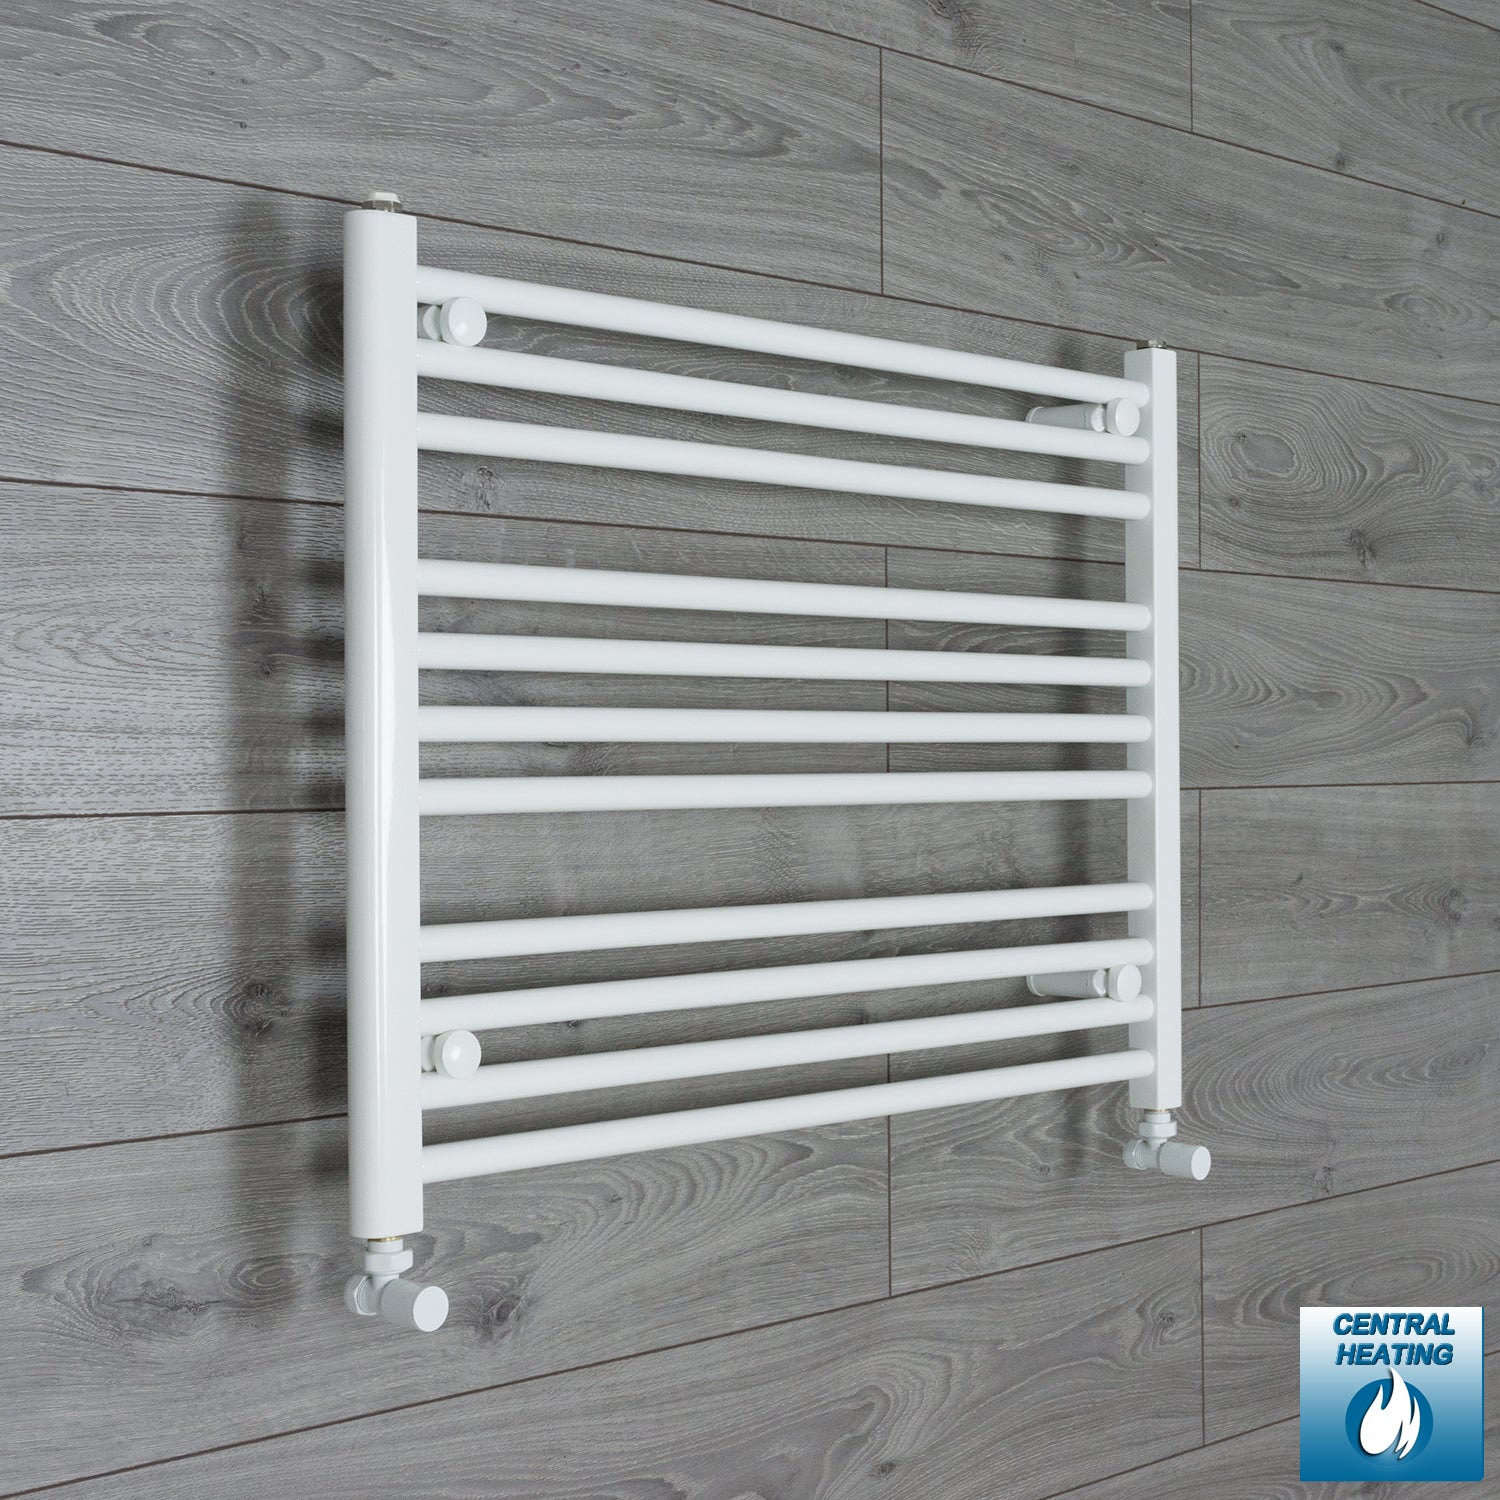 750mm Wide 600mm High White Towel Rail Radiator With Angled Valve